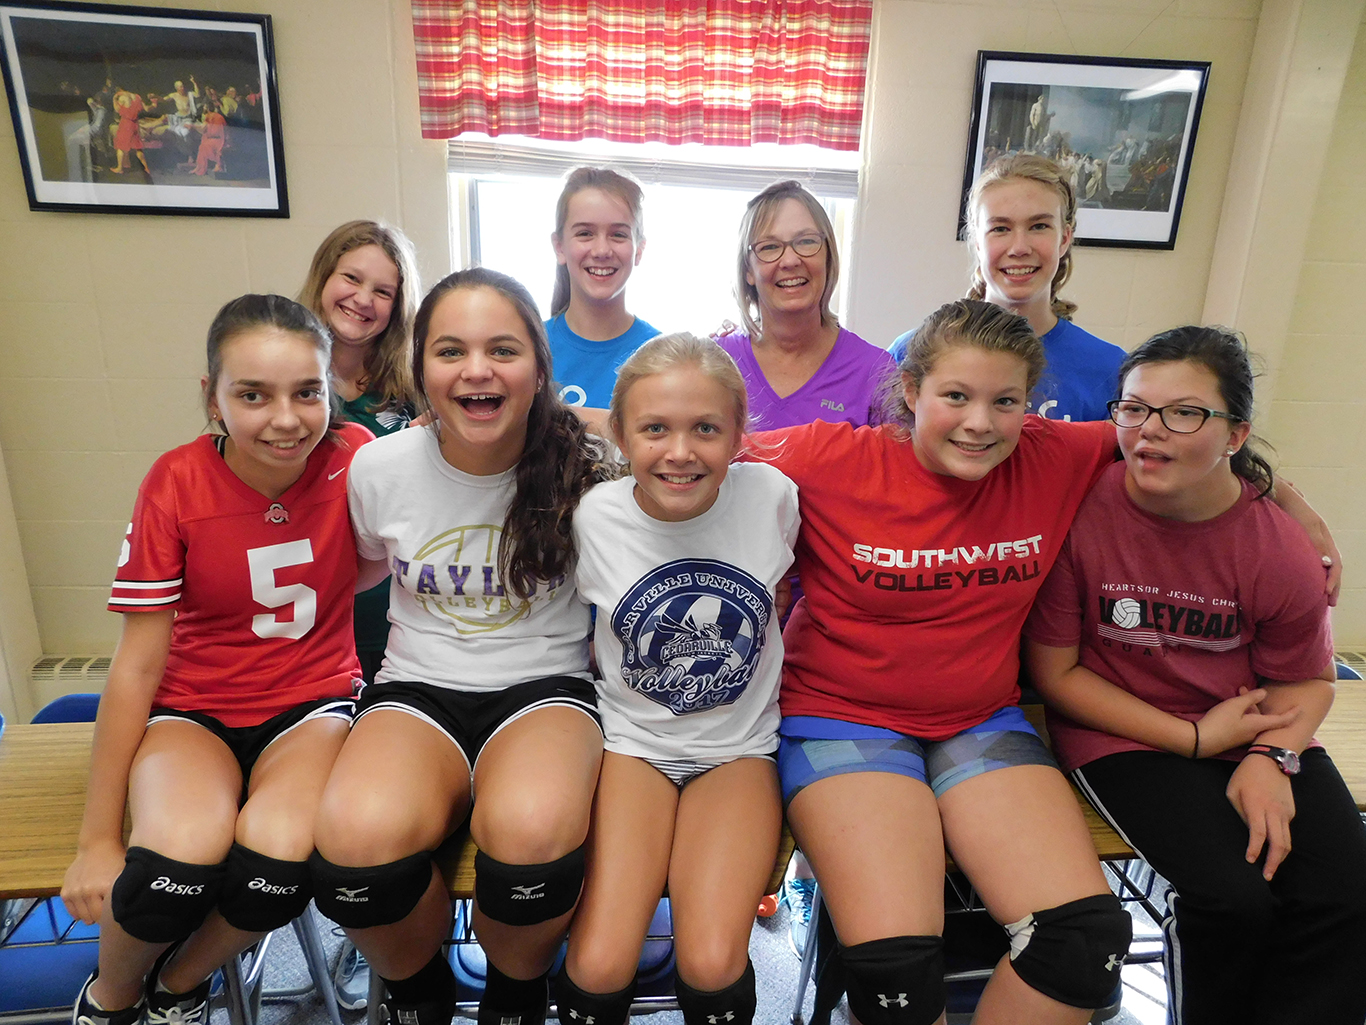 7th/8th Grade Volleyball Team